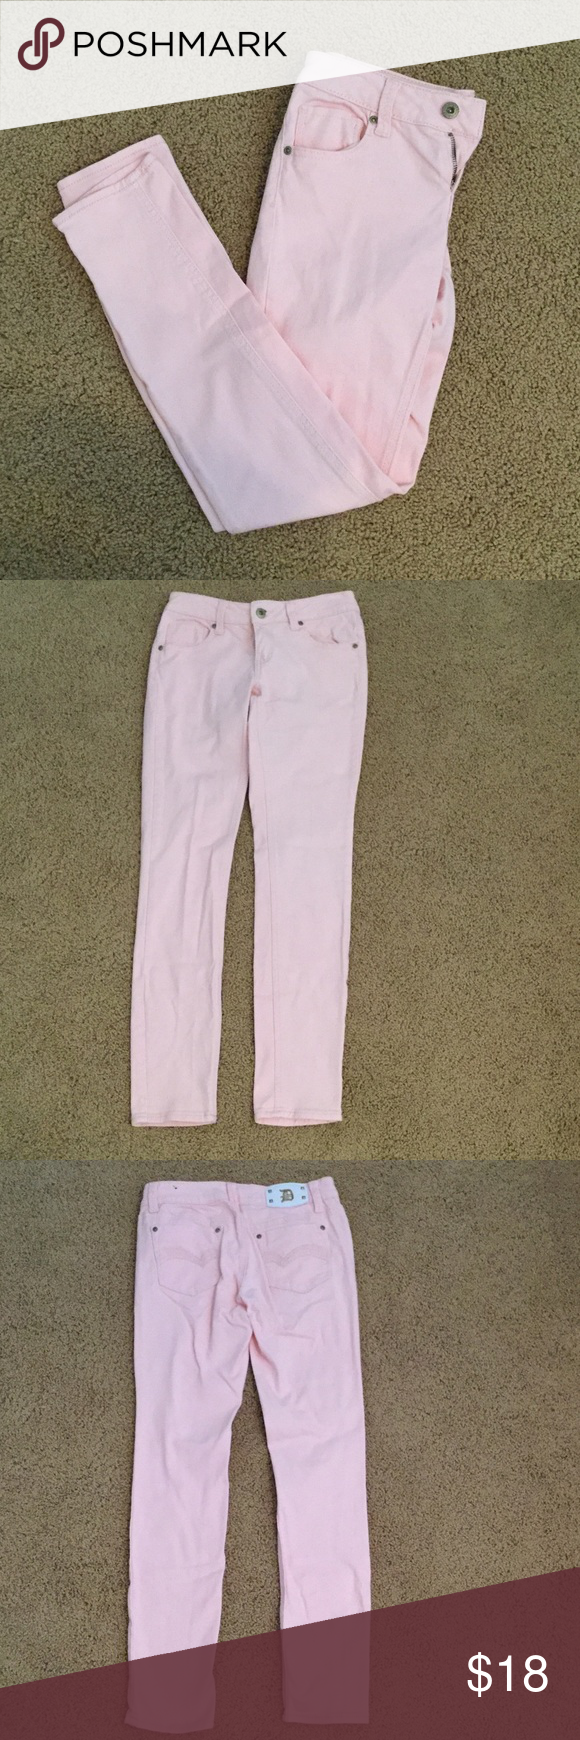 Baby Pink Dollhouse Jeans These jeans are a super cute baby pink color and look brand new! Willing to trade depending on item! Dollhouse Jeans Straight Leg